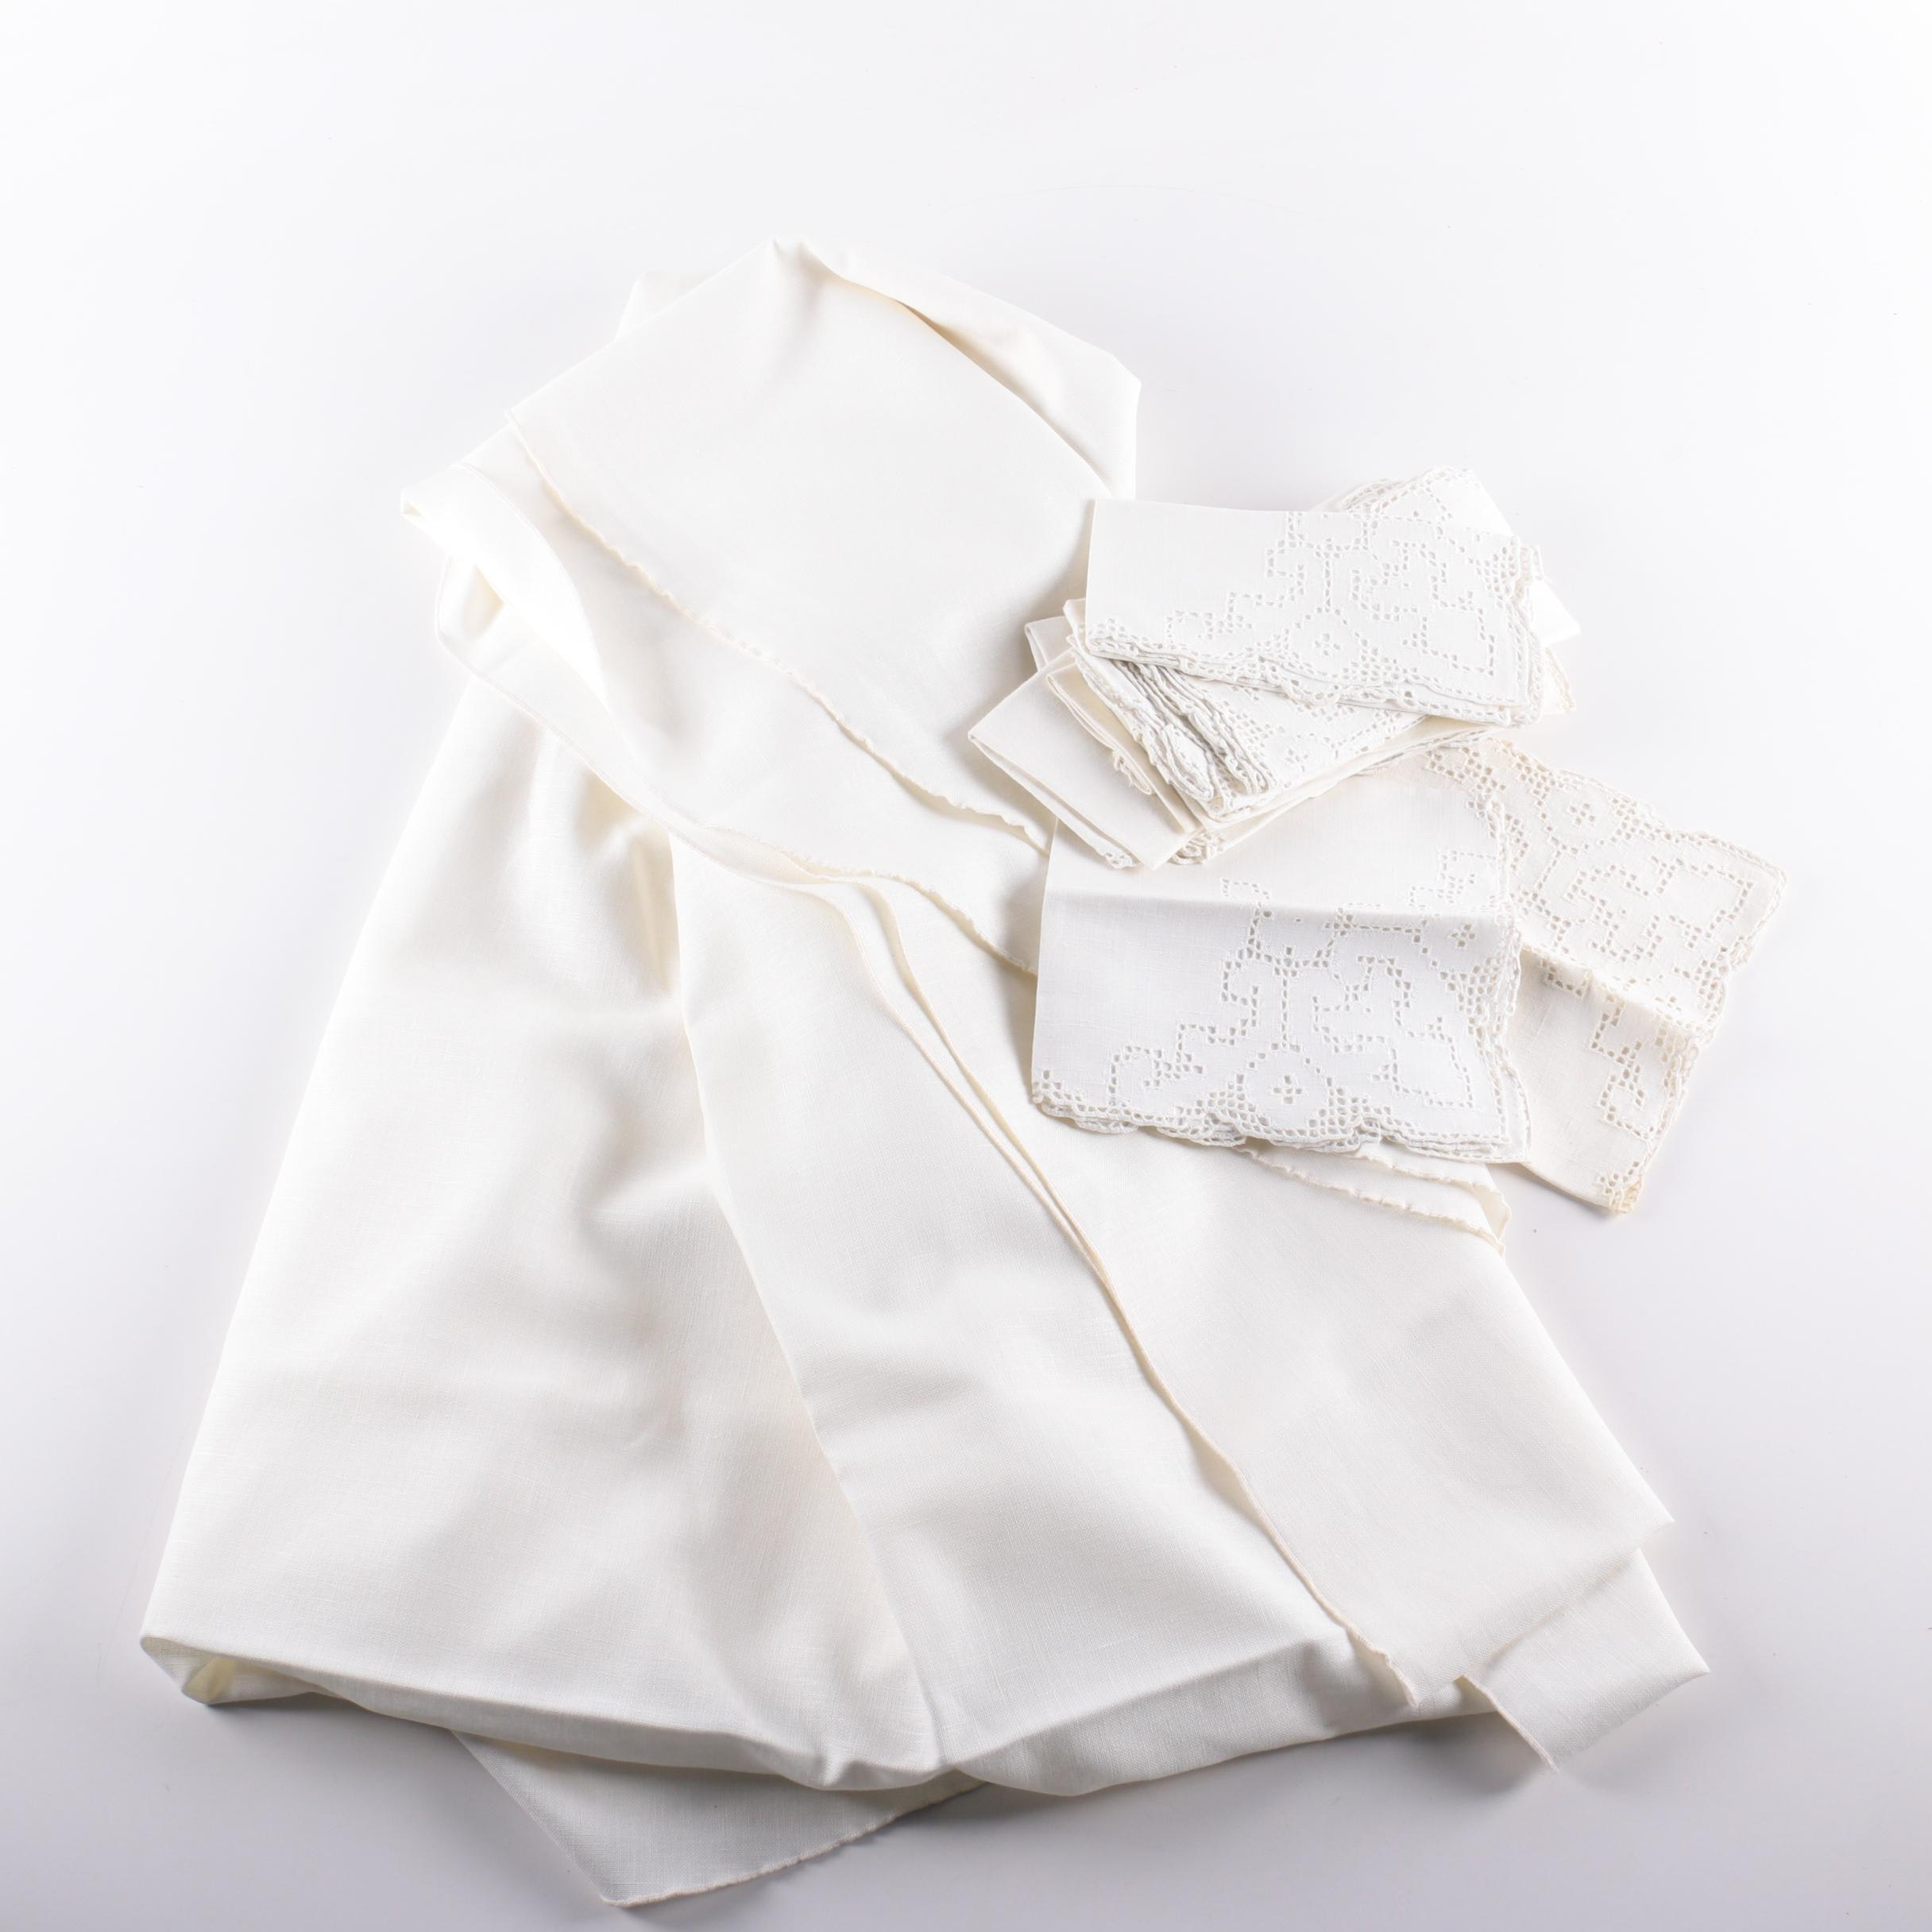 Assorted White Table Linens